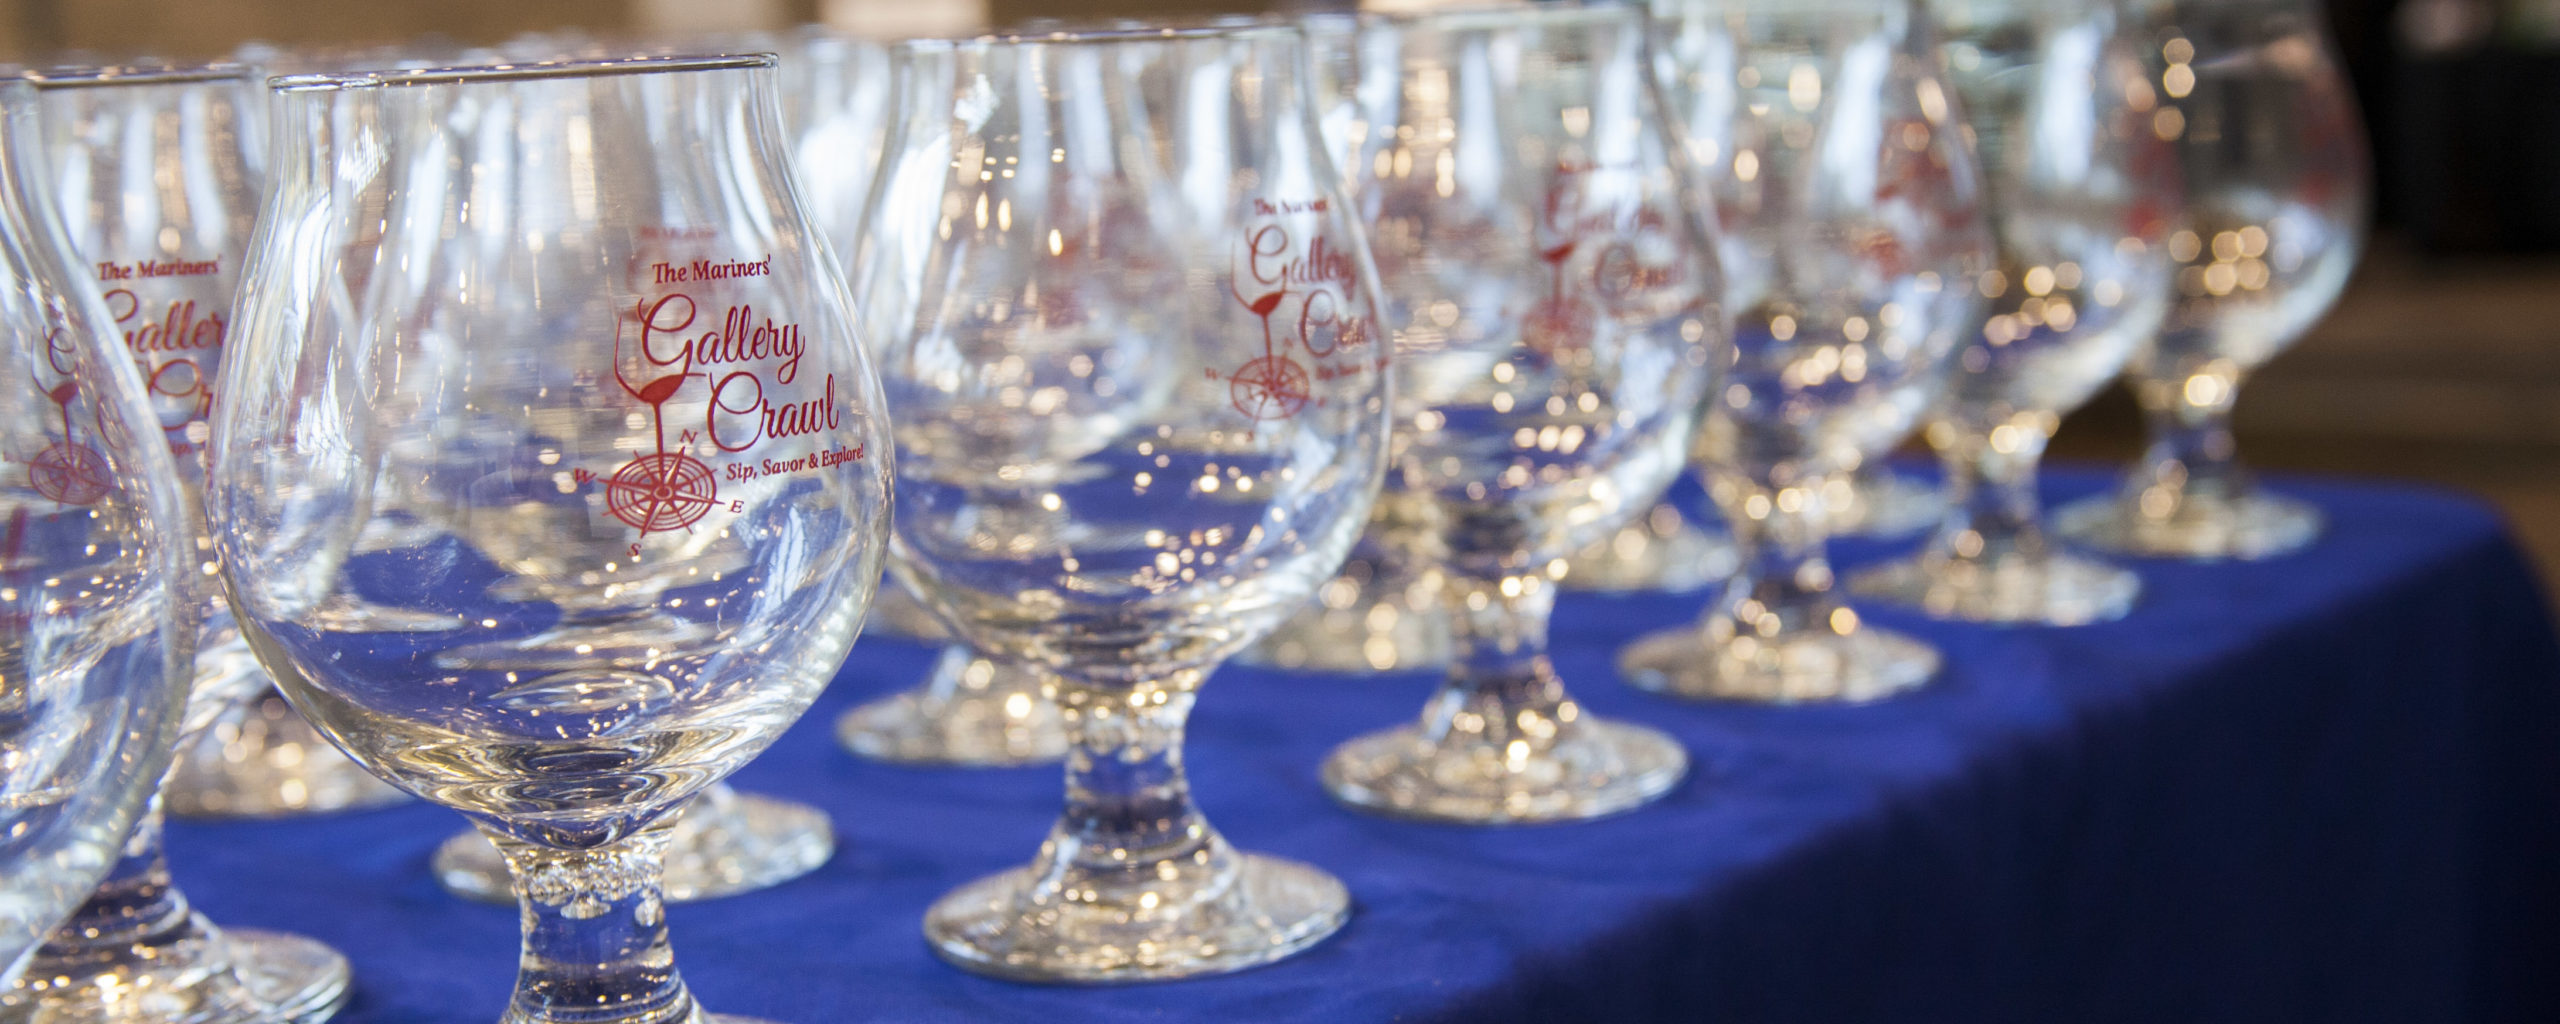 The Gallery Crawl souvenir glasses